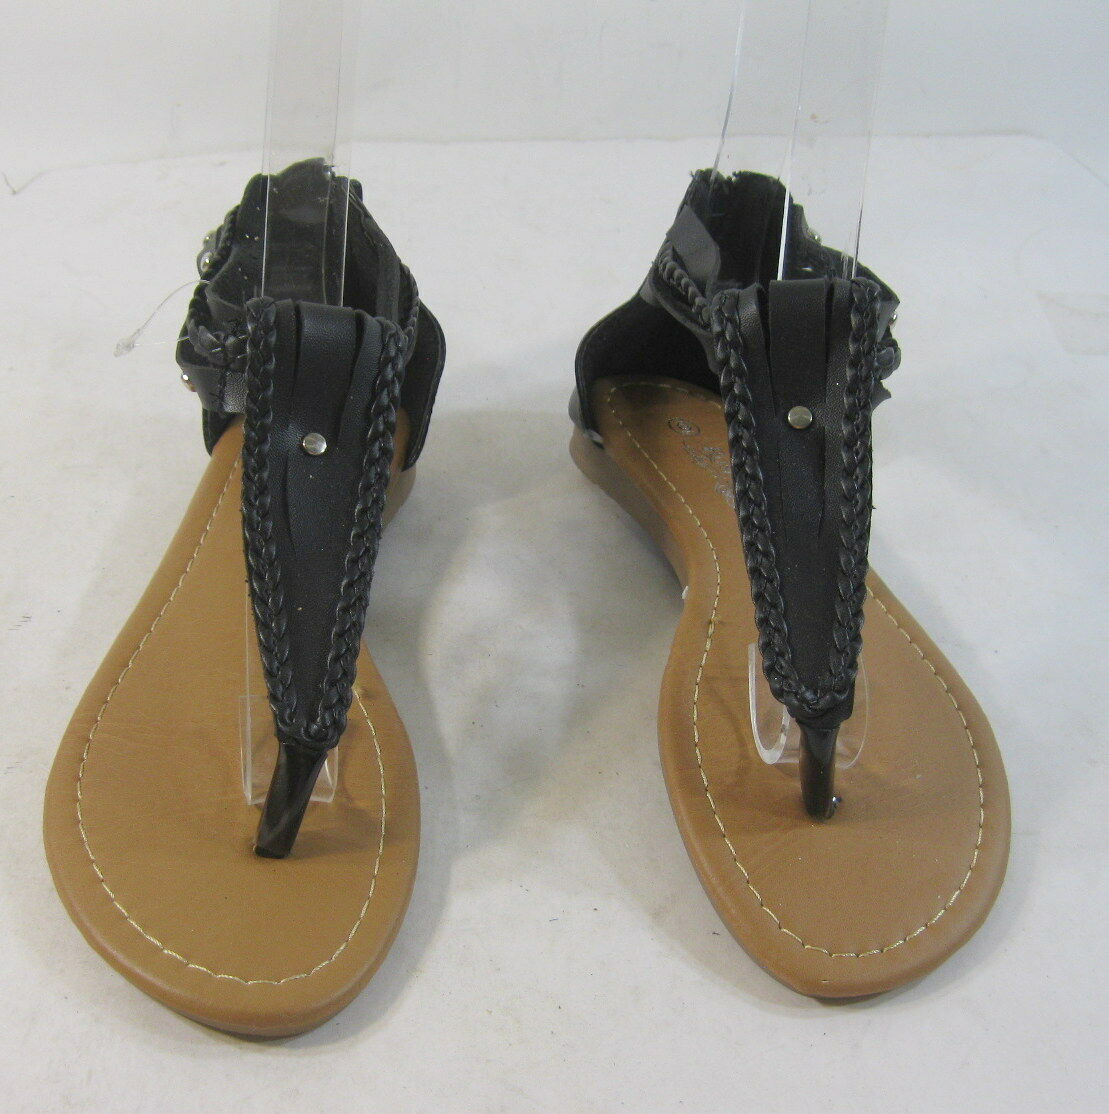 Summer Womens Sandal Black/Silver Stud 6 Sexy Shoes Size 6 Stud 8f6fe6